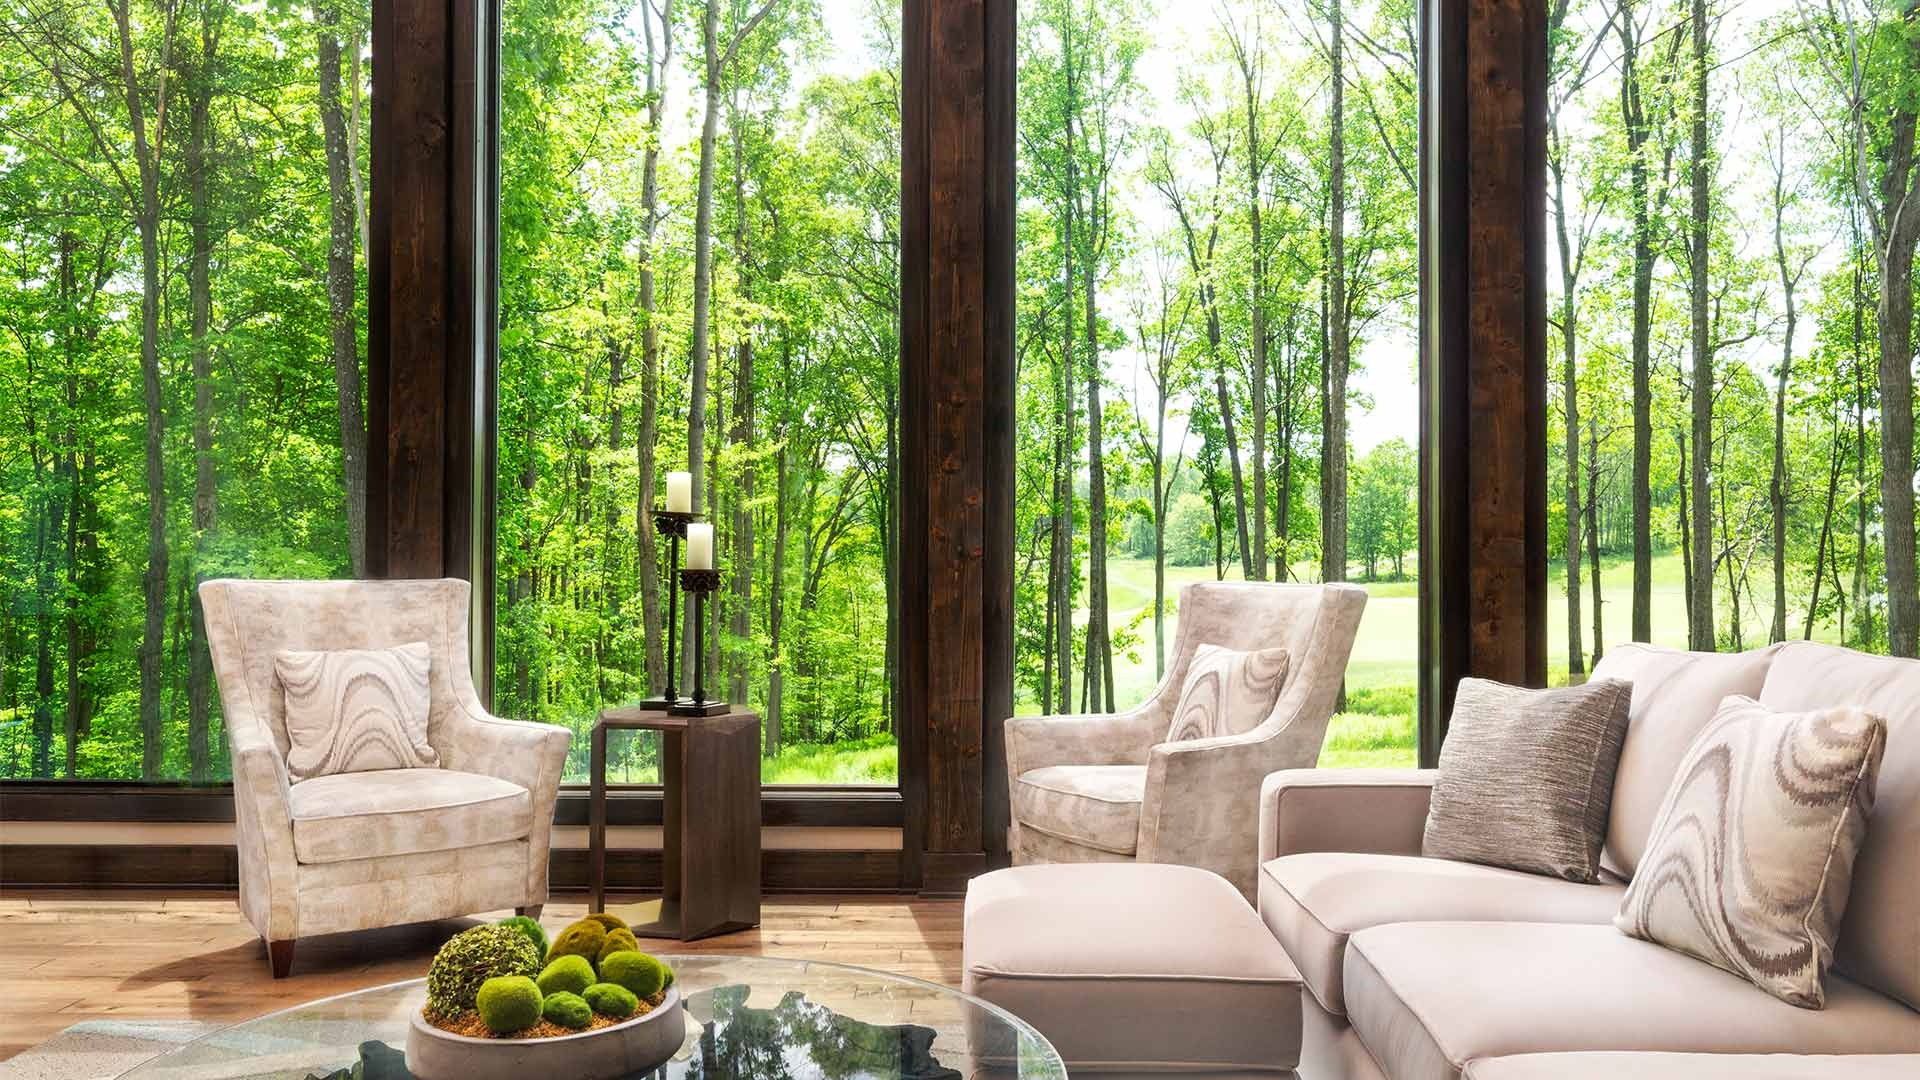 interior shot of the dogwood sitting area. There are two cream colored chairs and a matching couch around a coffee table. There are floor to ceiling windows give a view of the forest outside